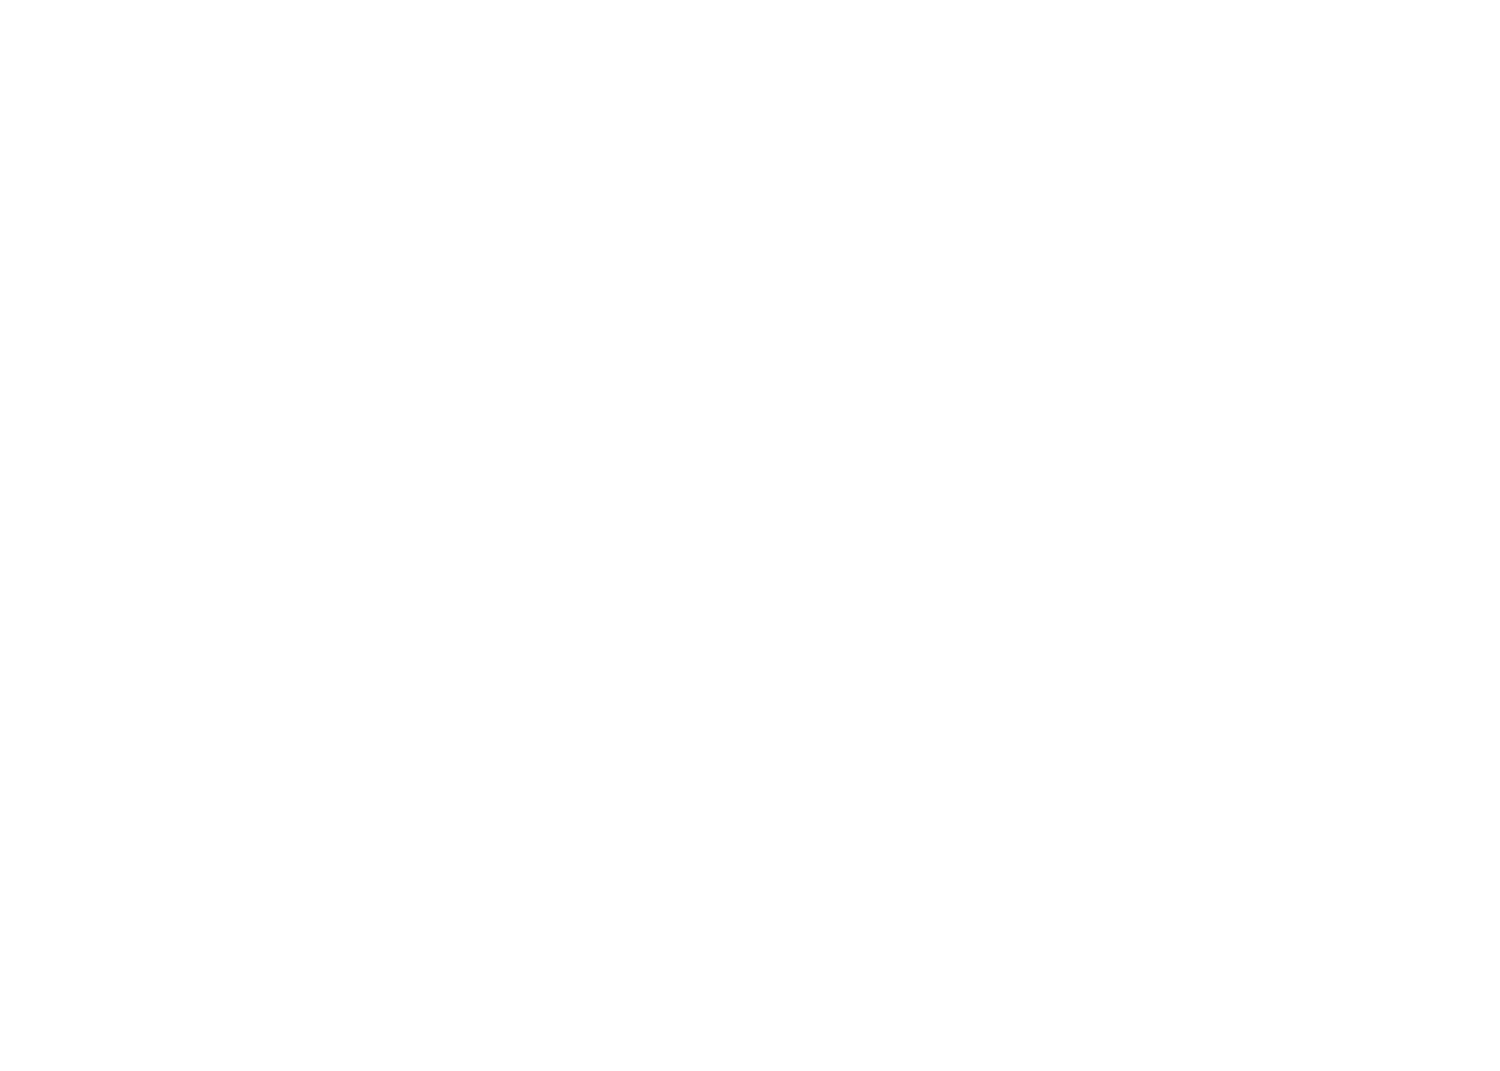 Blanket Fort Entertainment